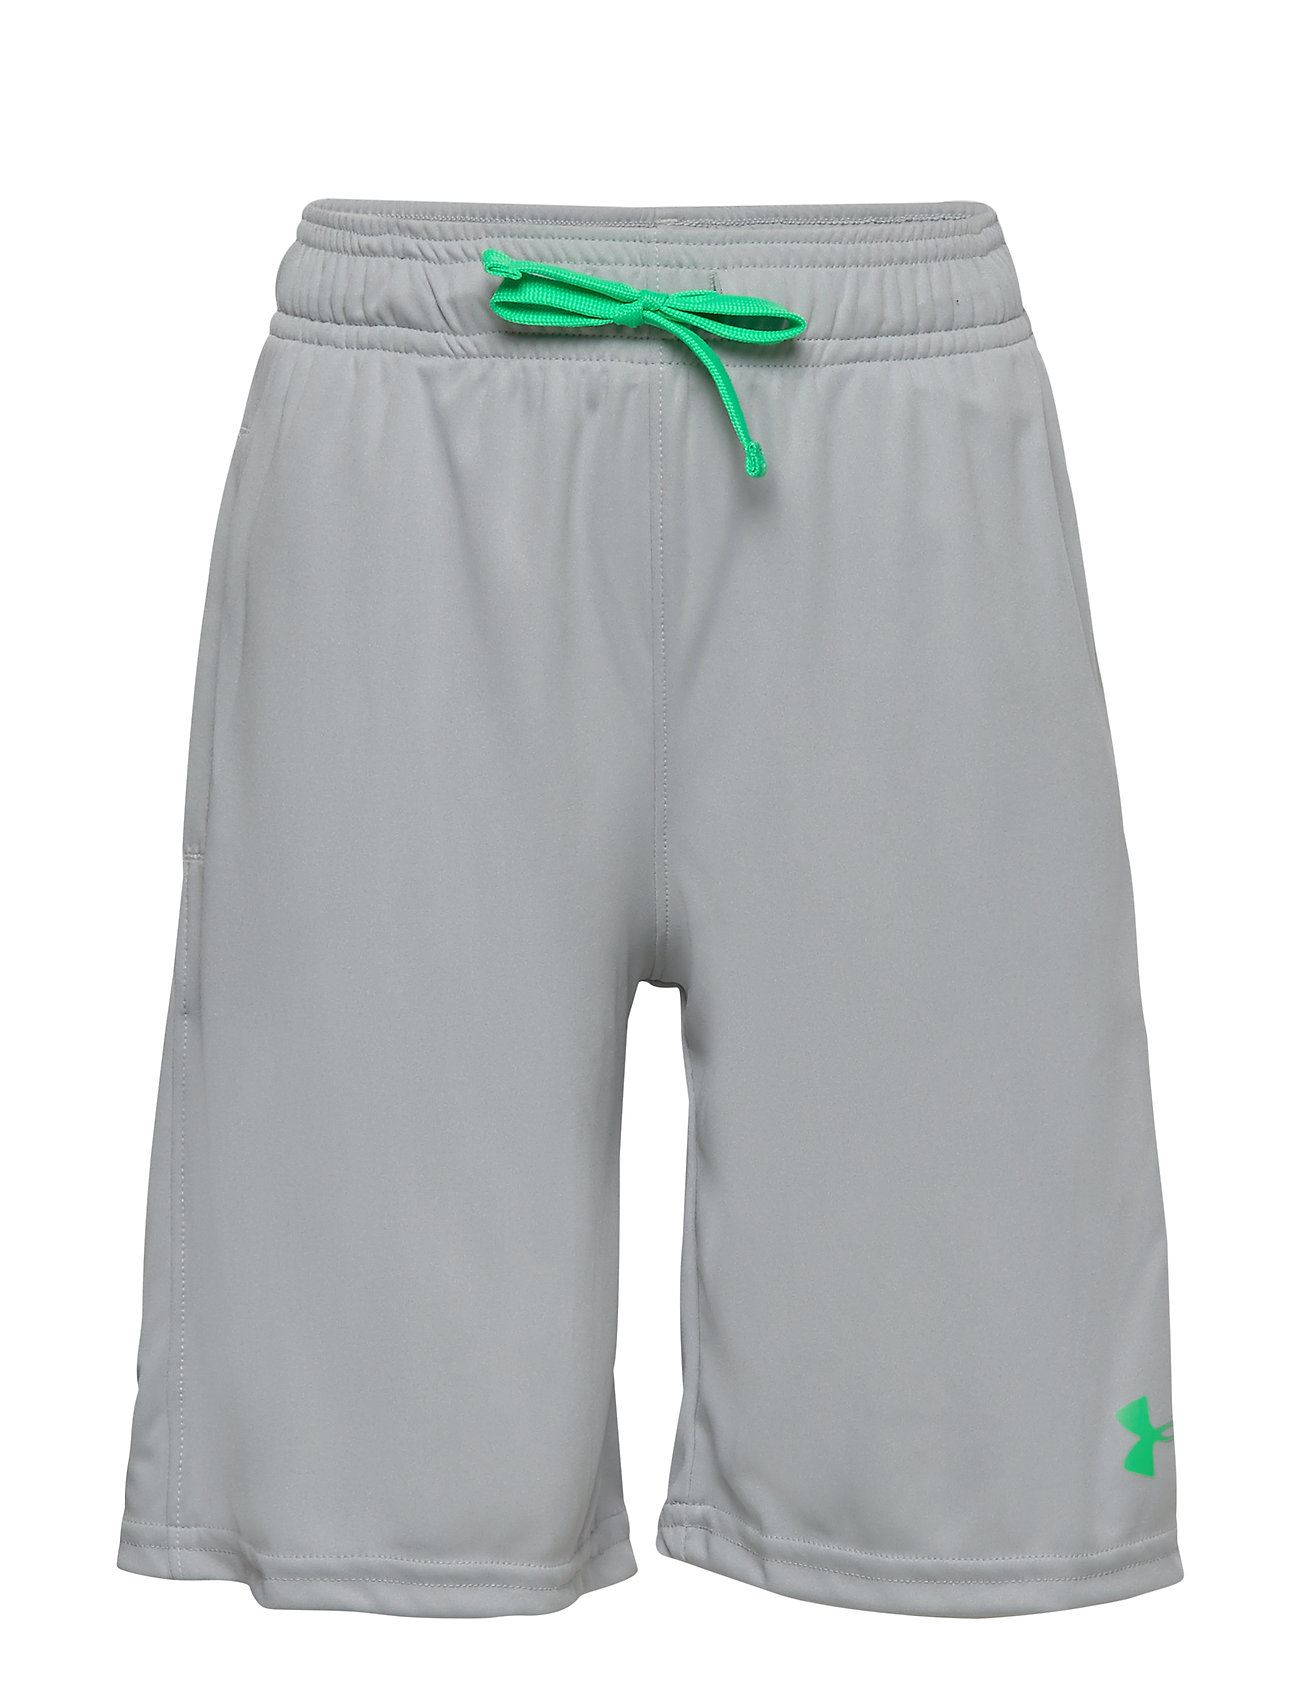 Under Armour UA Prototype Wordmark Shorts - MOD GRAY LIGHT HEATHER